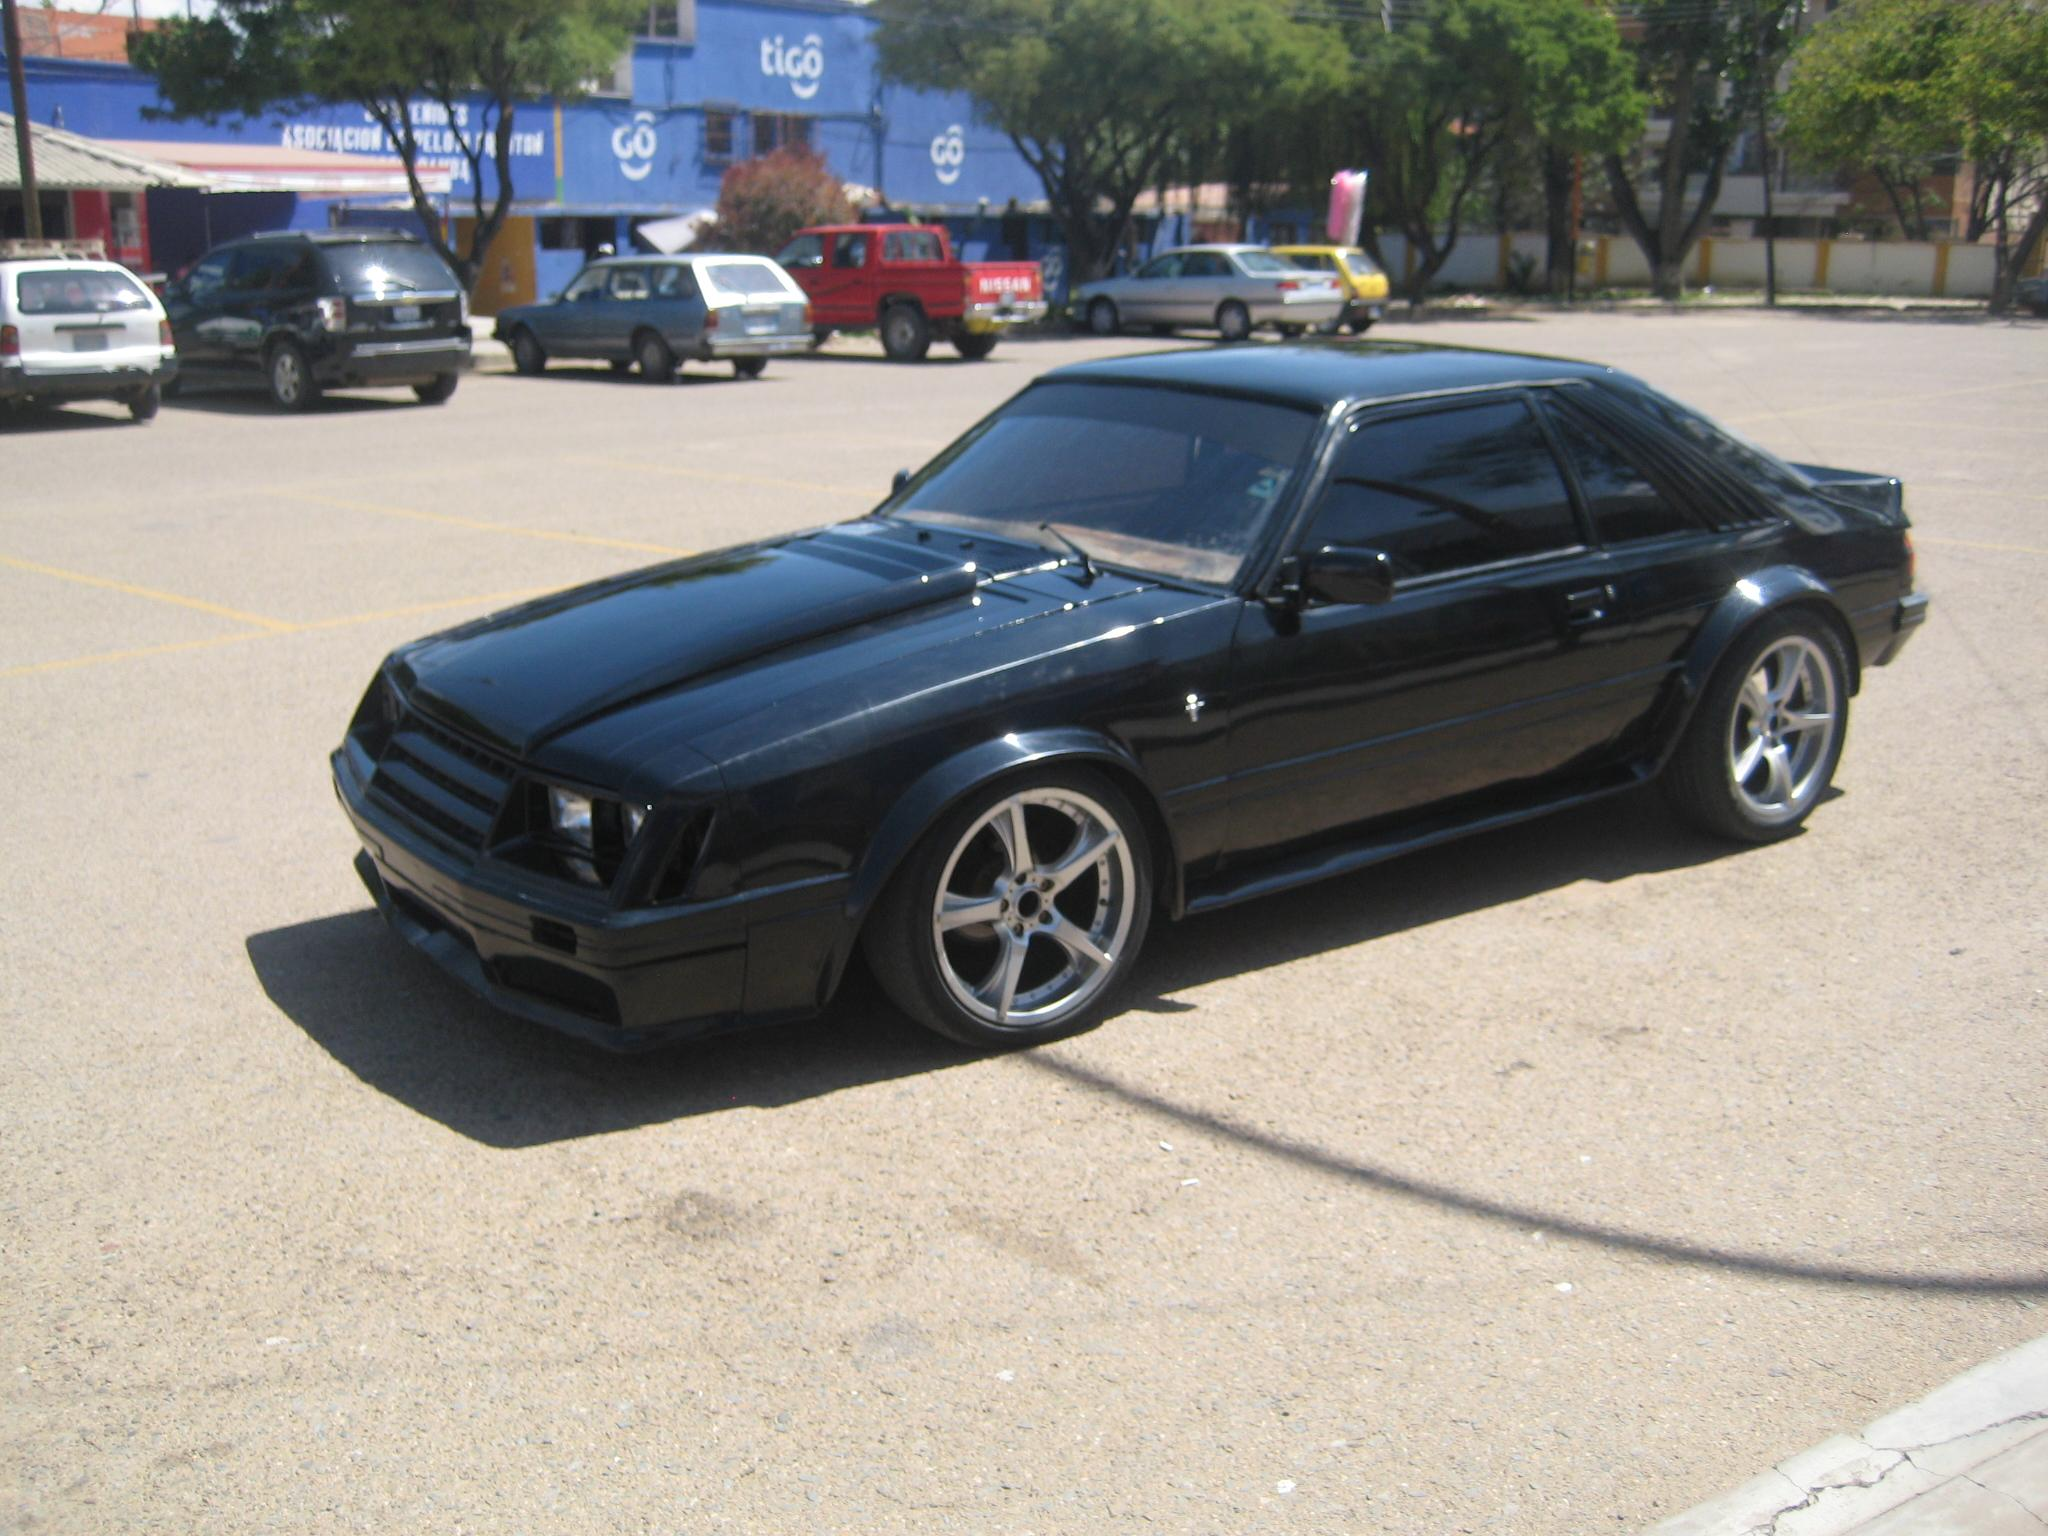 Guichi10s 1980 ford mustang in cochabamba car wallpaper